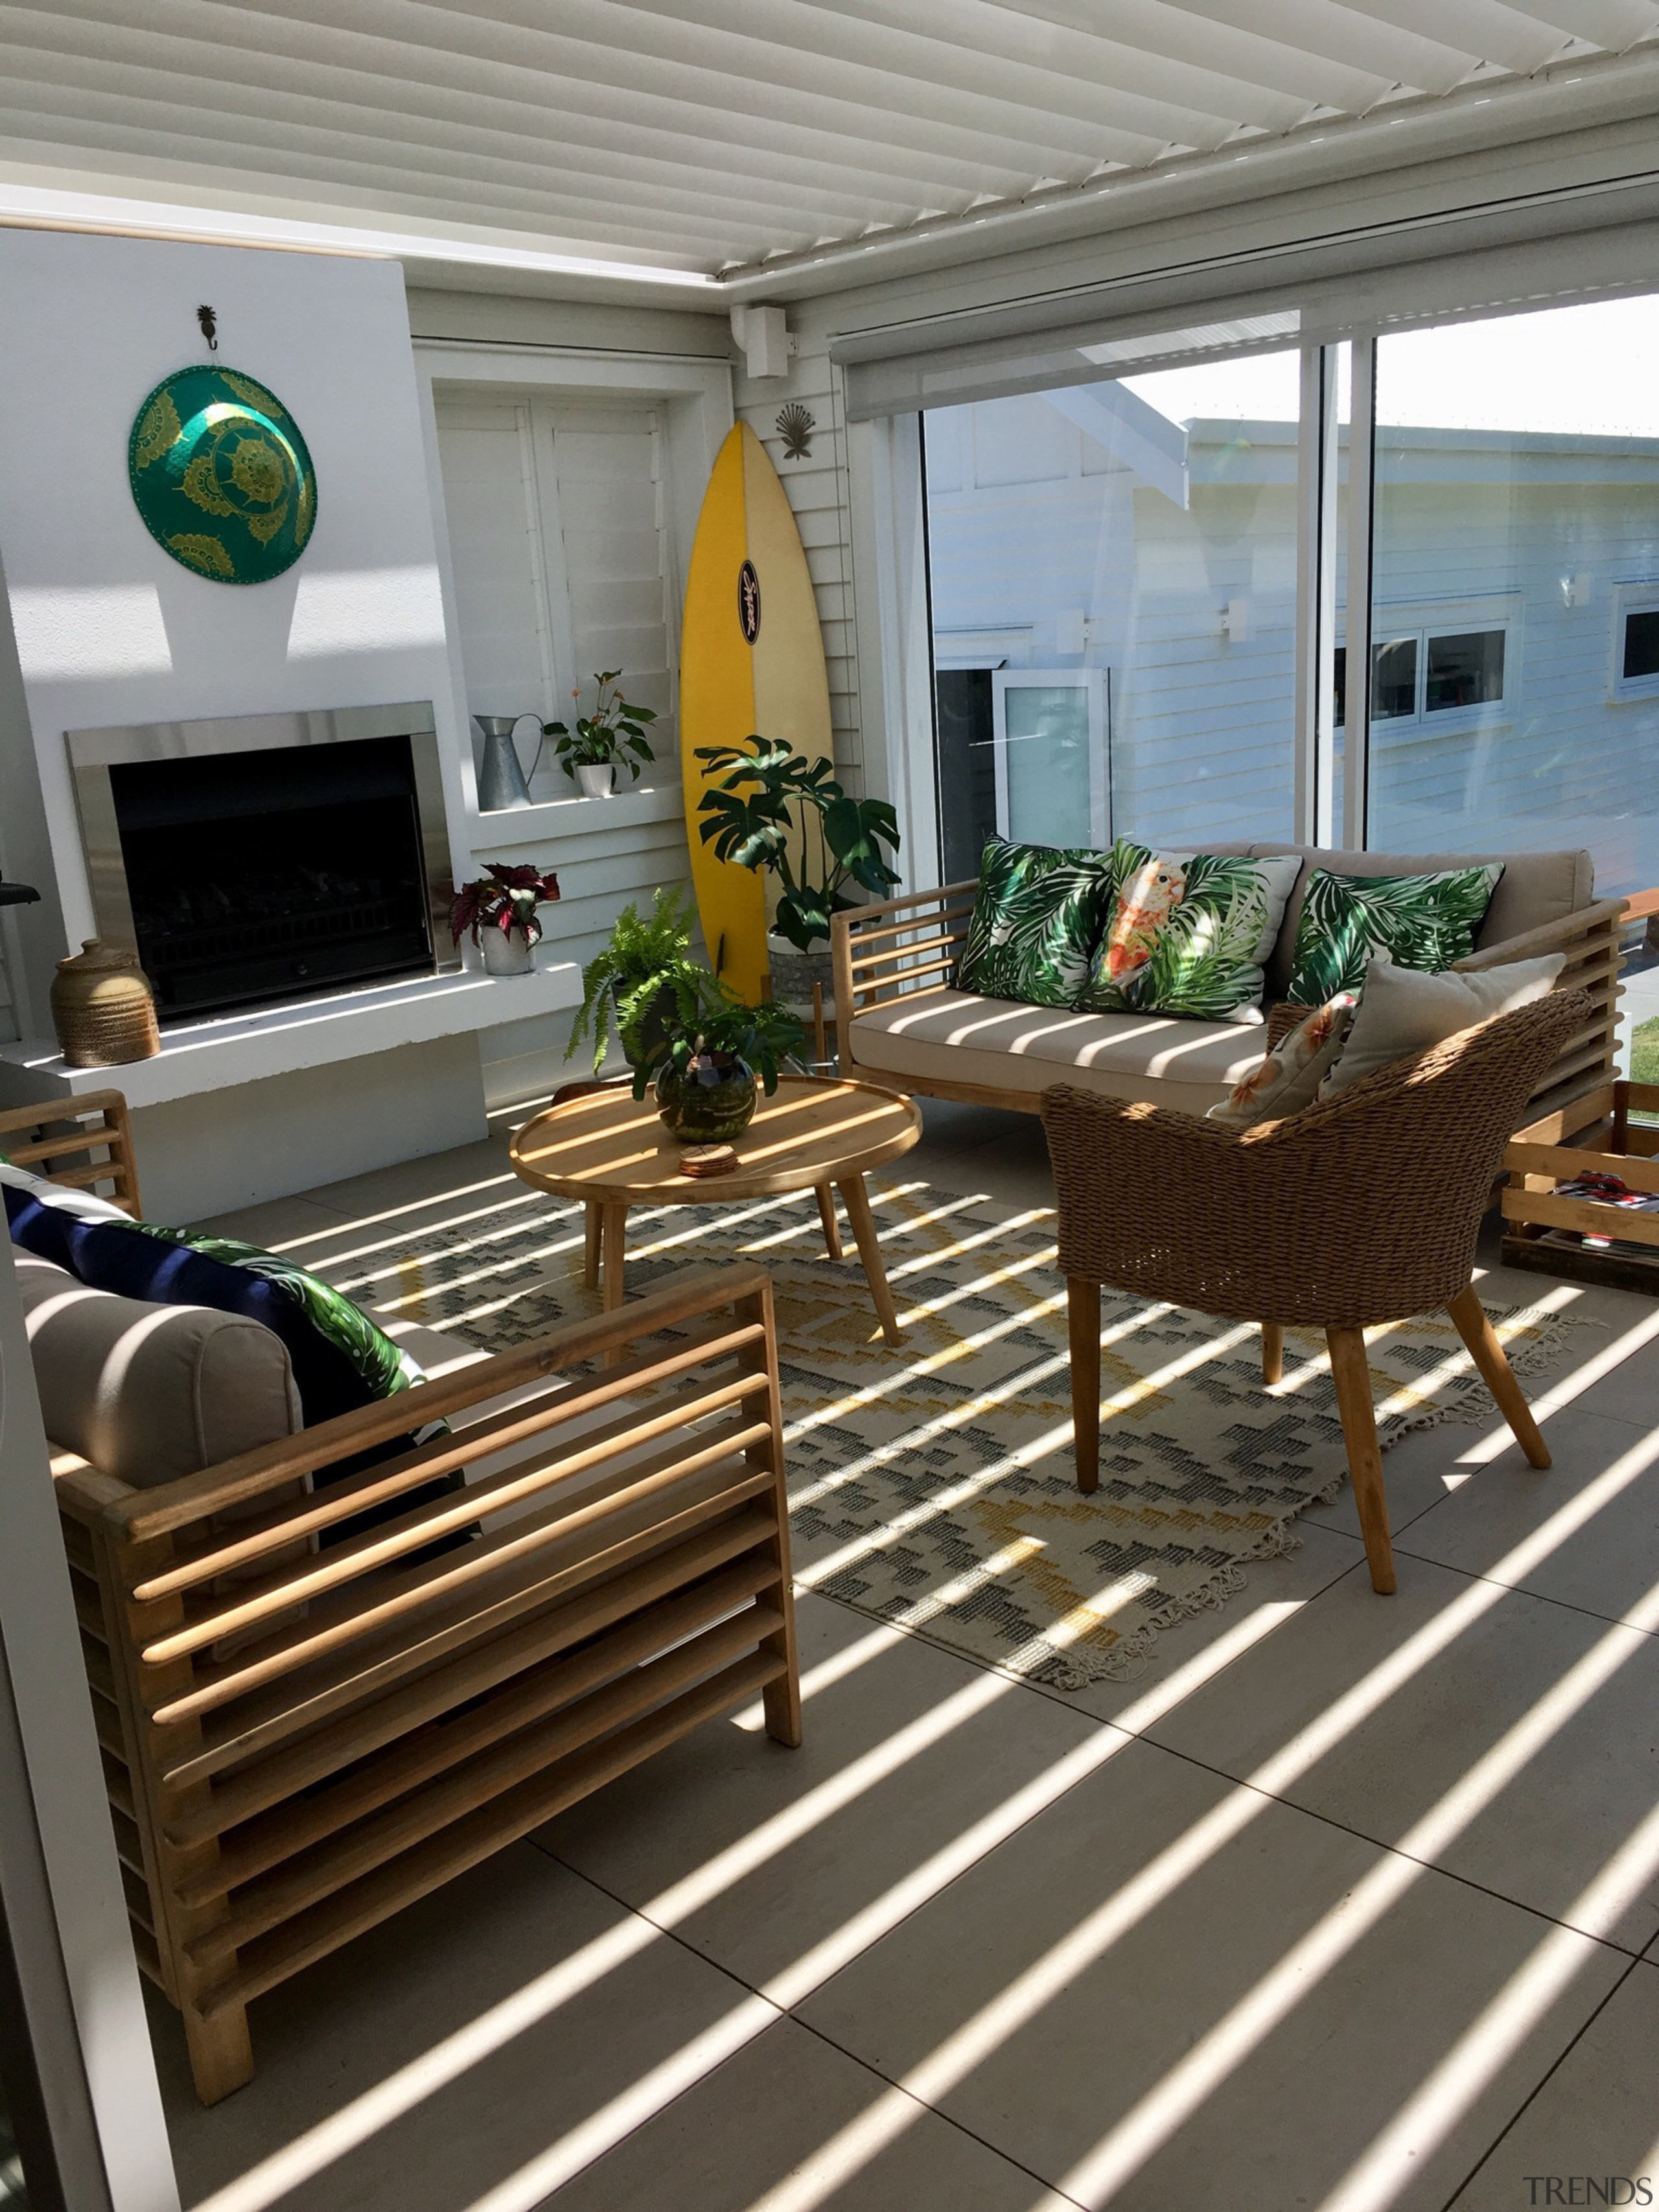 Louvretec - balcony | building | ceiling | balcony, building, ceiling, deck, floor, flooring, furniture, hardwood, home, house, interior design, living room, patio, porch, property, real estate, roof, room, table, gray